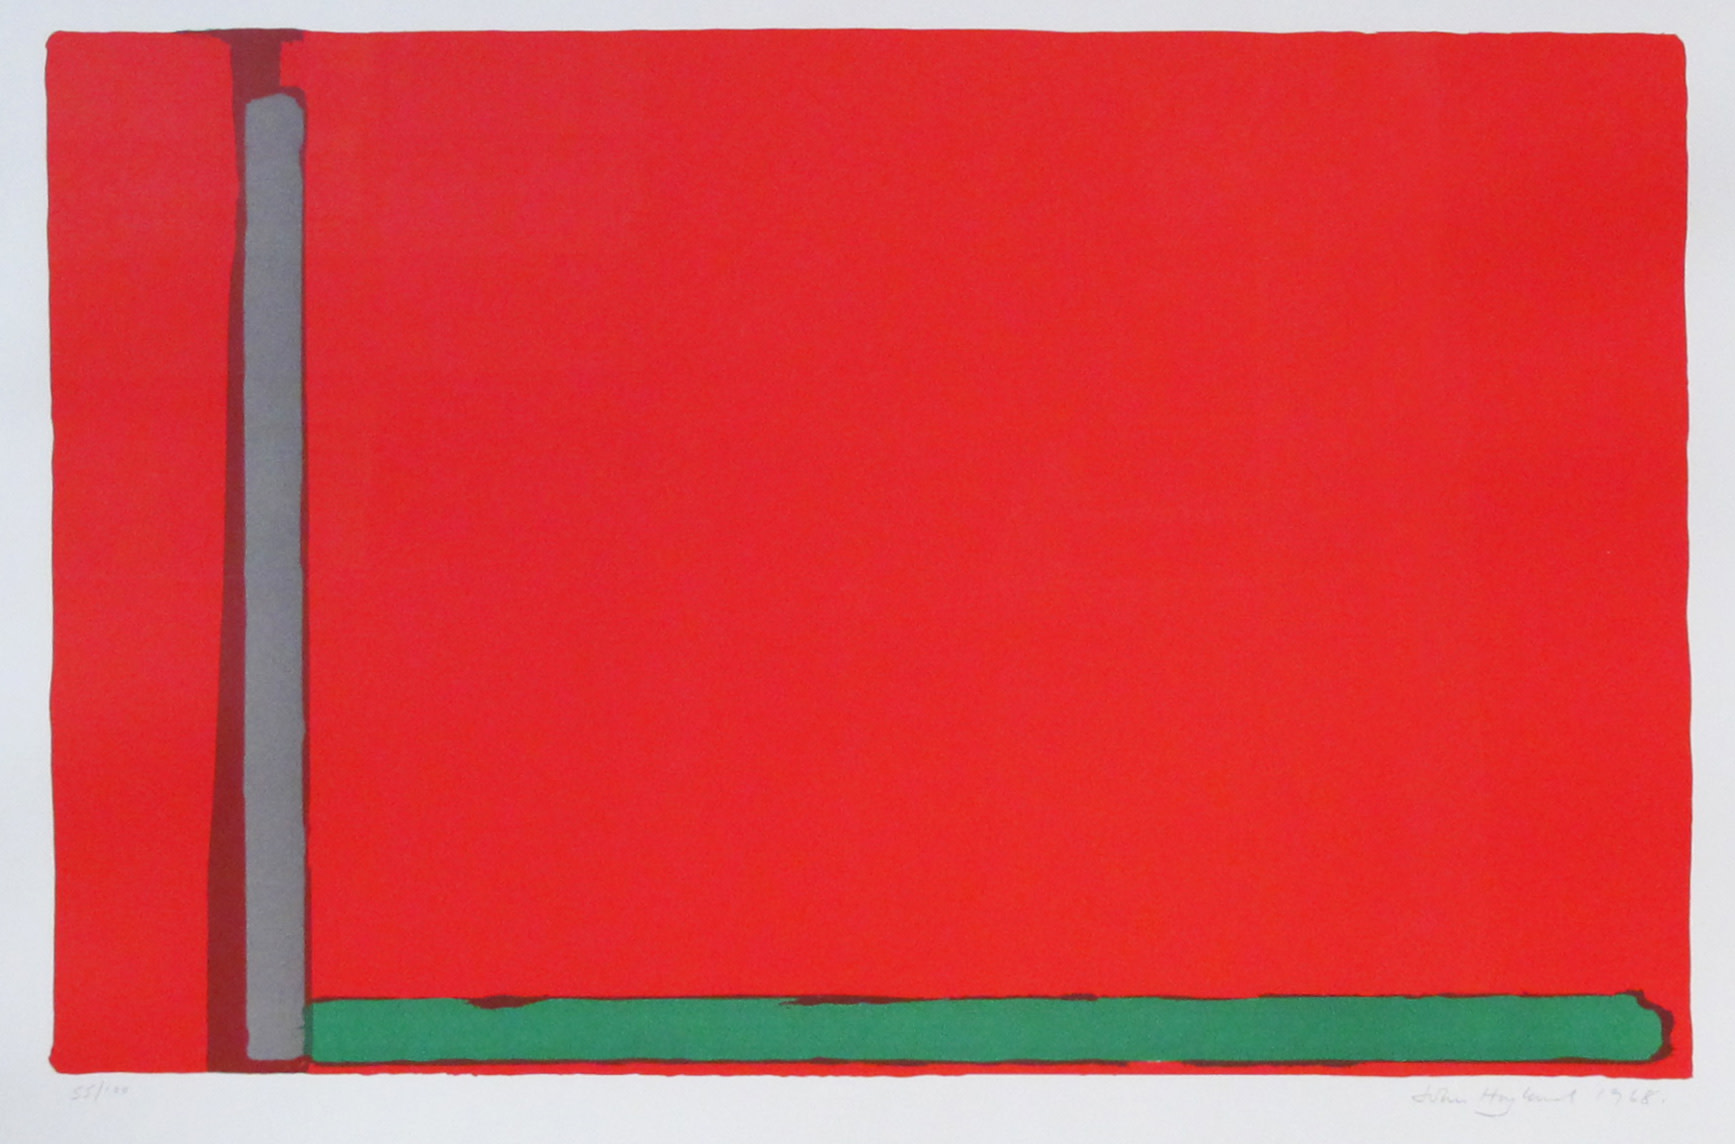 <span class=&#34;link fancybox-details-link&#34;><a href=&#34;/artists/131-john-hoyland/works/782/&#34;>View Detail Page</a></span><div class=&#34;artist&#34;><strong>John Hoyland</strong></div> 1934-2011 <div class=&#34;title&#34;><em>Swiss Red</em></div> <div class=&#34;signed_and_dated&#34;>signed and dated 1968<br /> numbered 55 from an edition of 100</div> <div class=&#34;medium&#34;>lithograph</div> <div class=&#34;dimensions&#34;>63.5 x 90.5 cms (25 x 35.75 ins)</div>